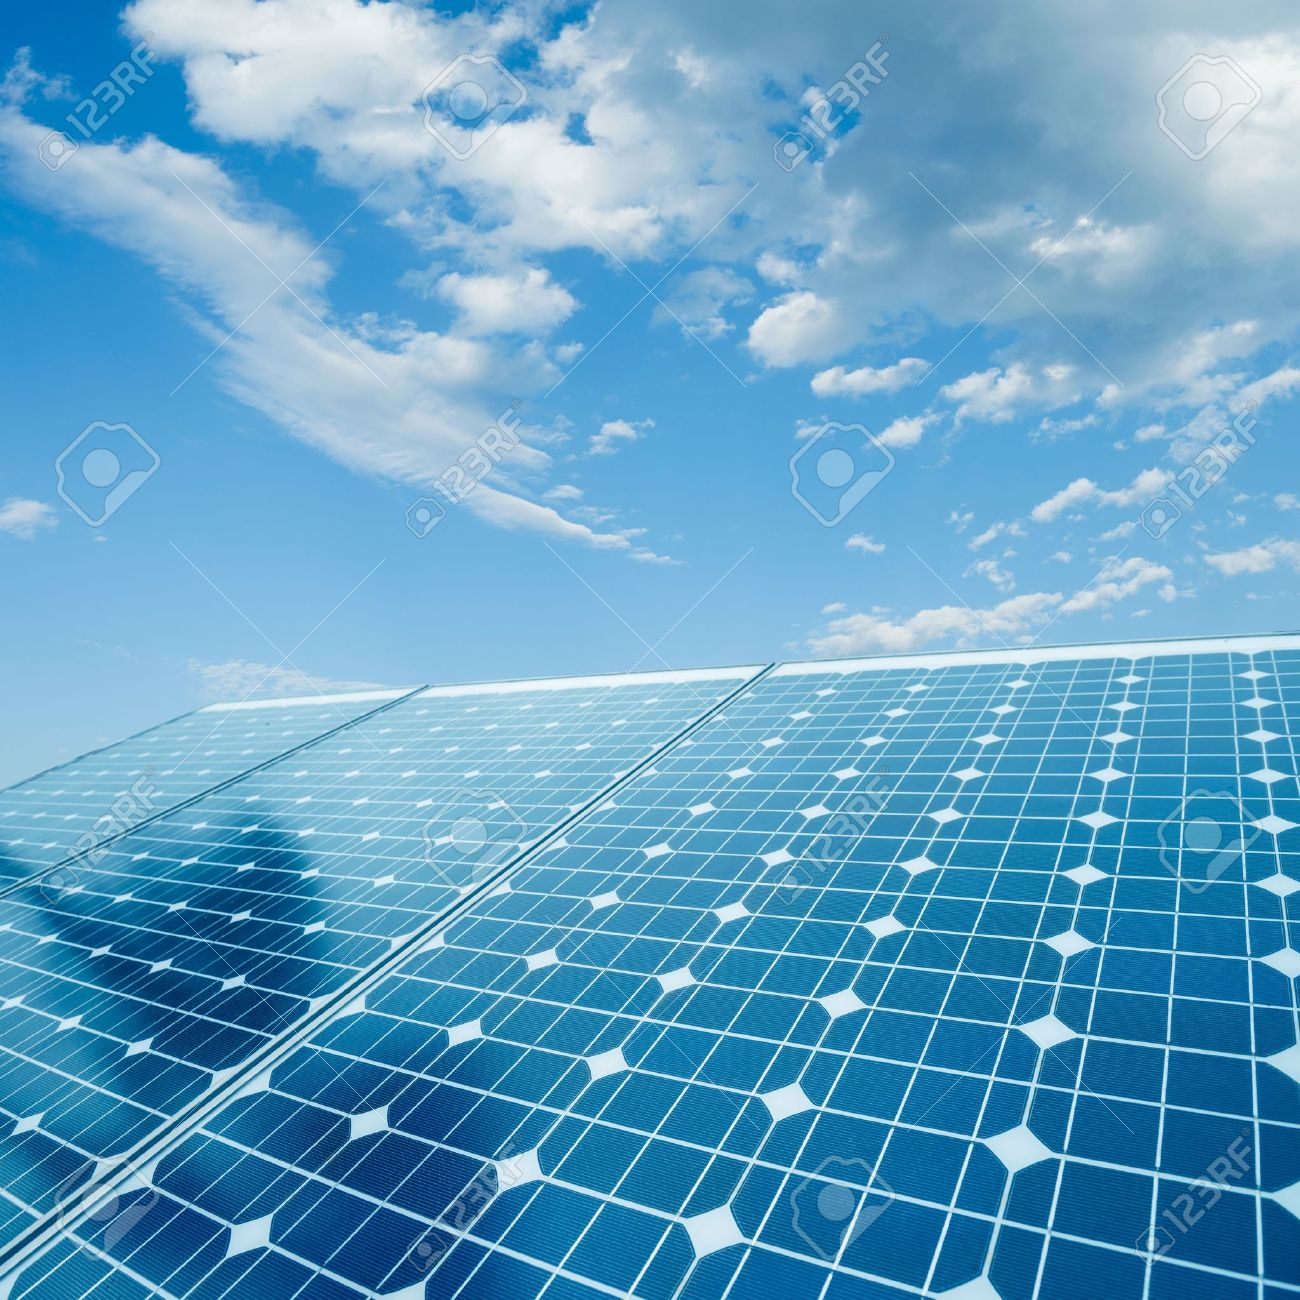 photovoltaic cells and sunlight background - 20201648